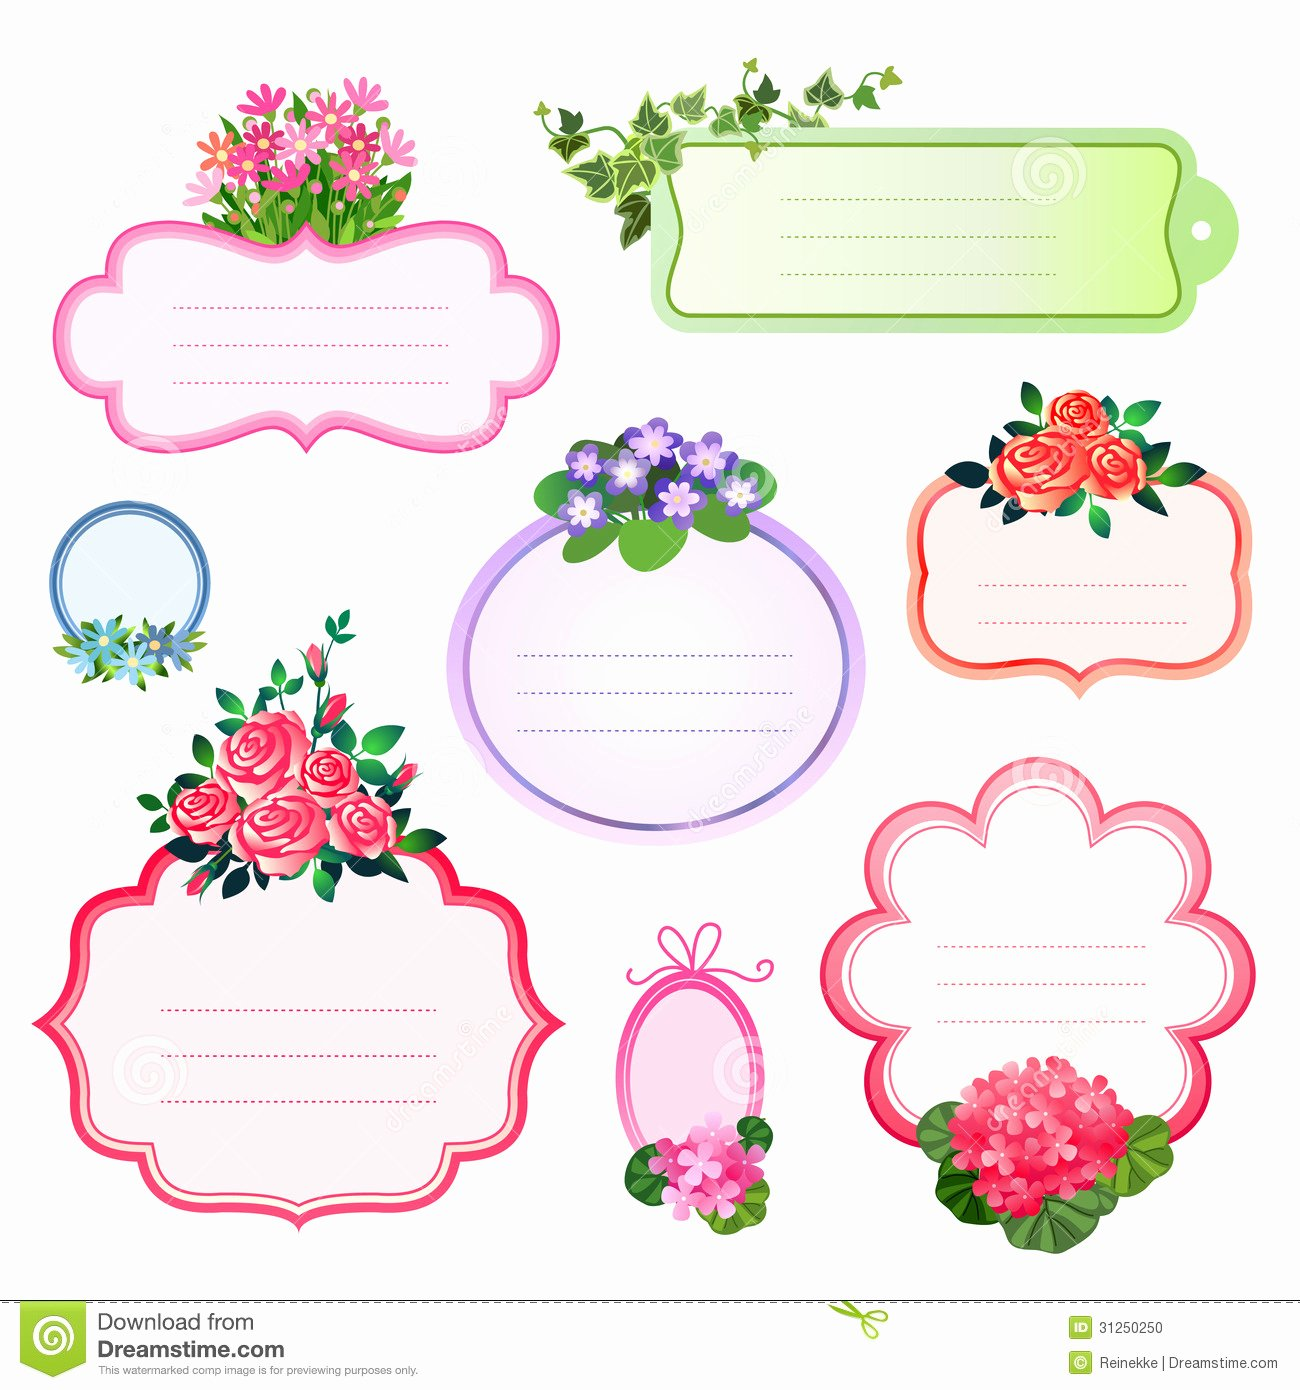 Printable Dog Tag Template Best Of Etiquetas De La Flor Ilustración Del Vector Ilustración